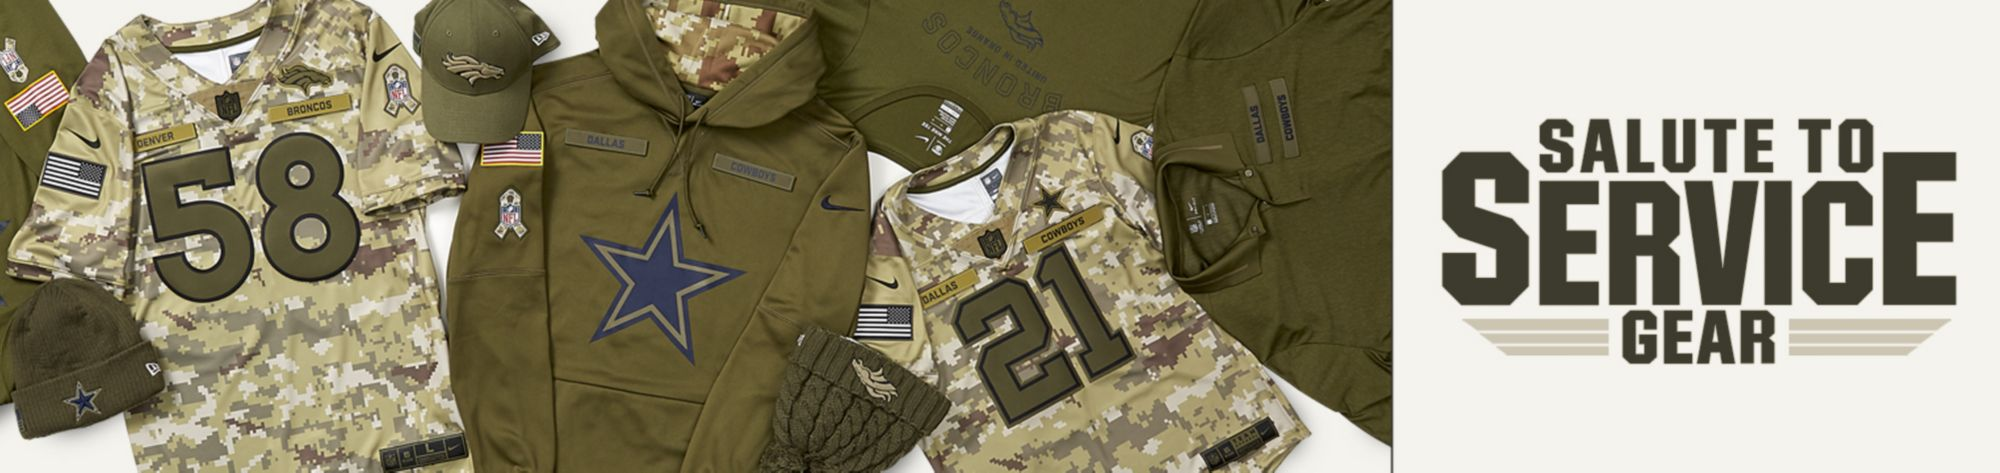 NFL Salute to Service Gear